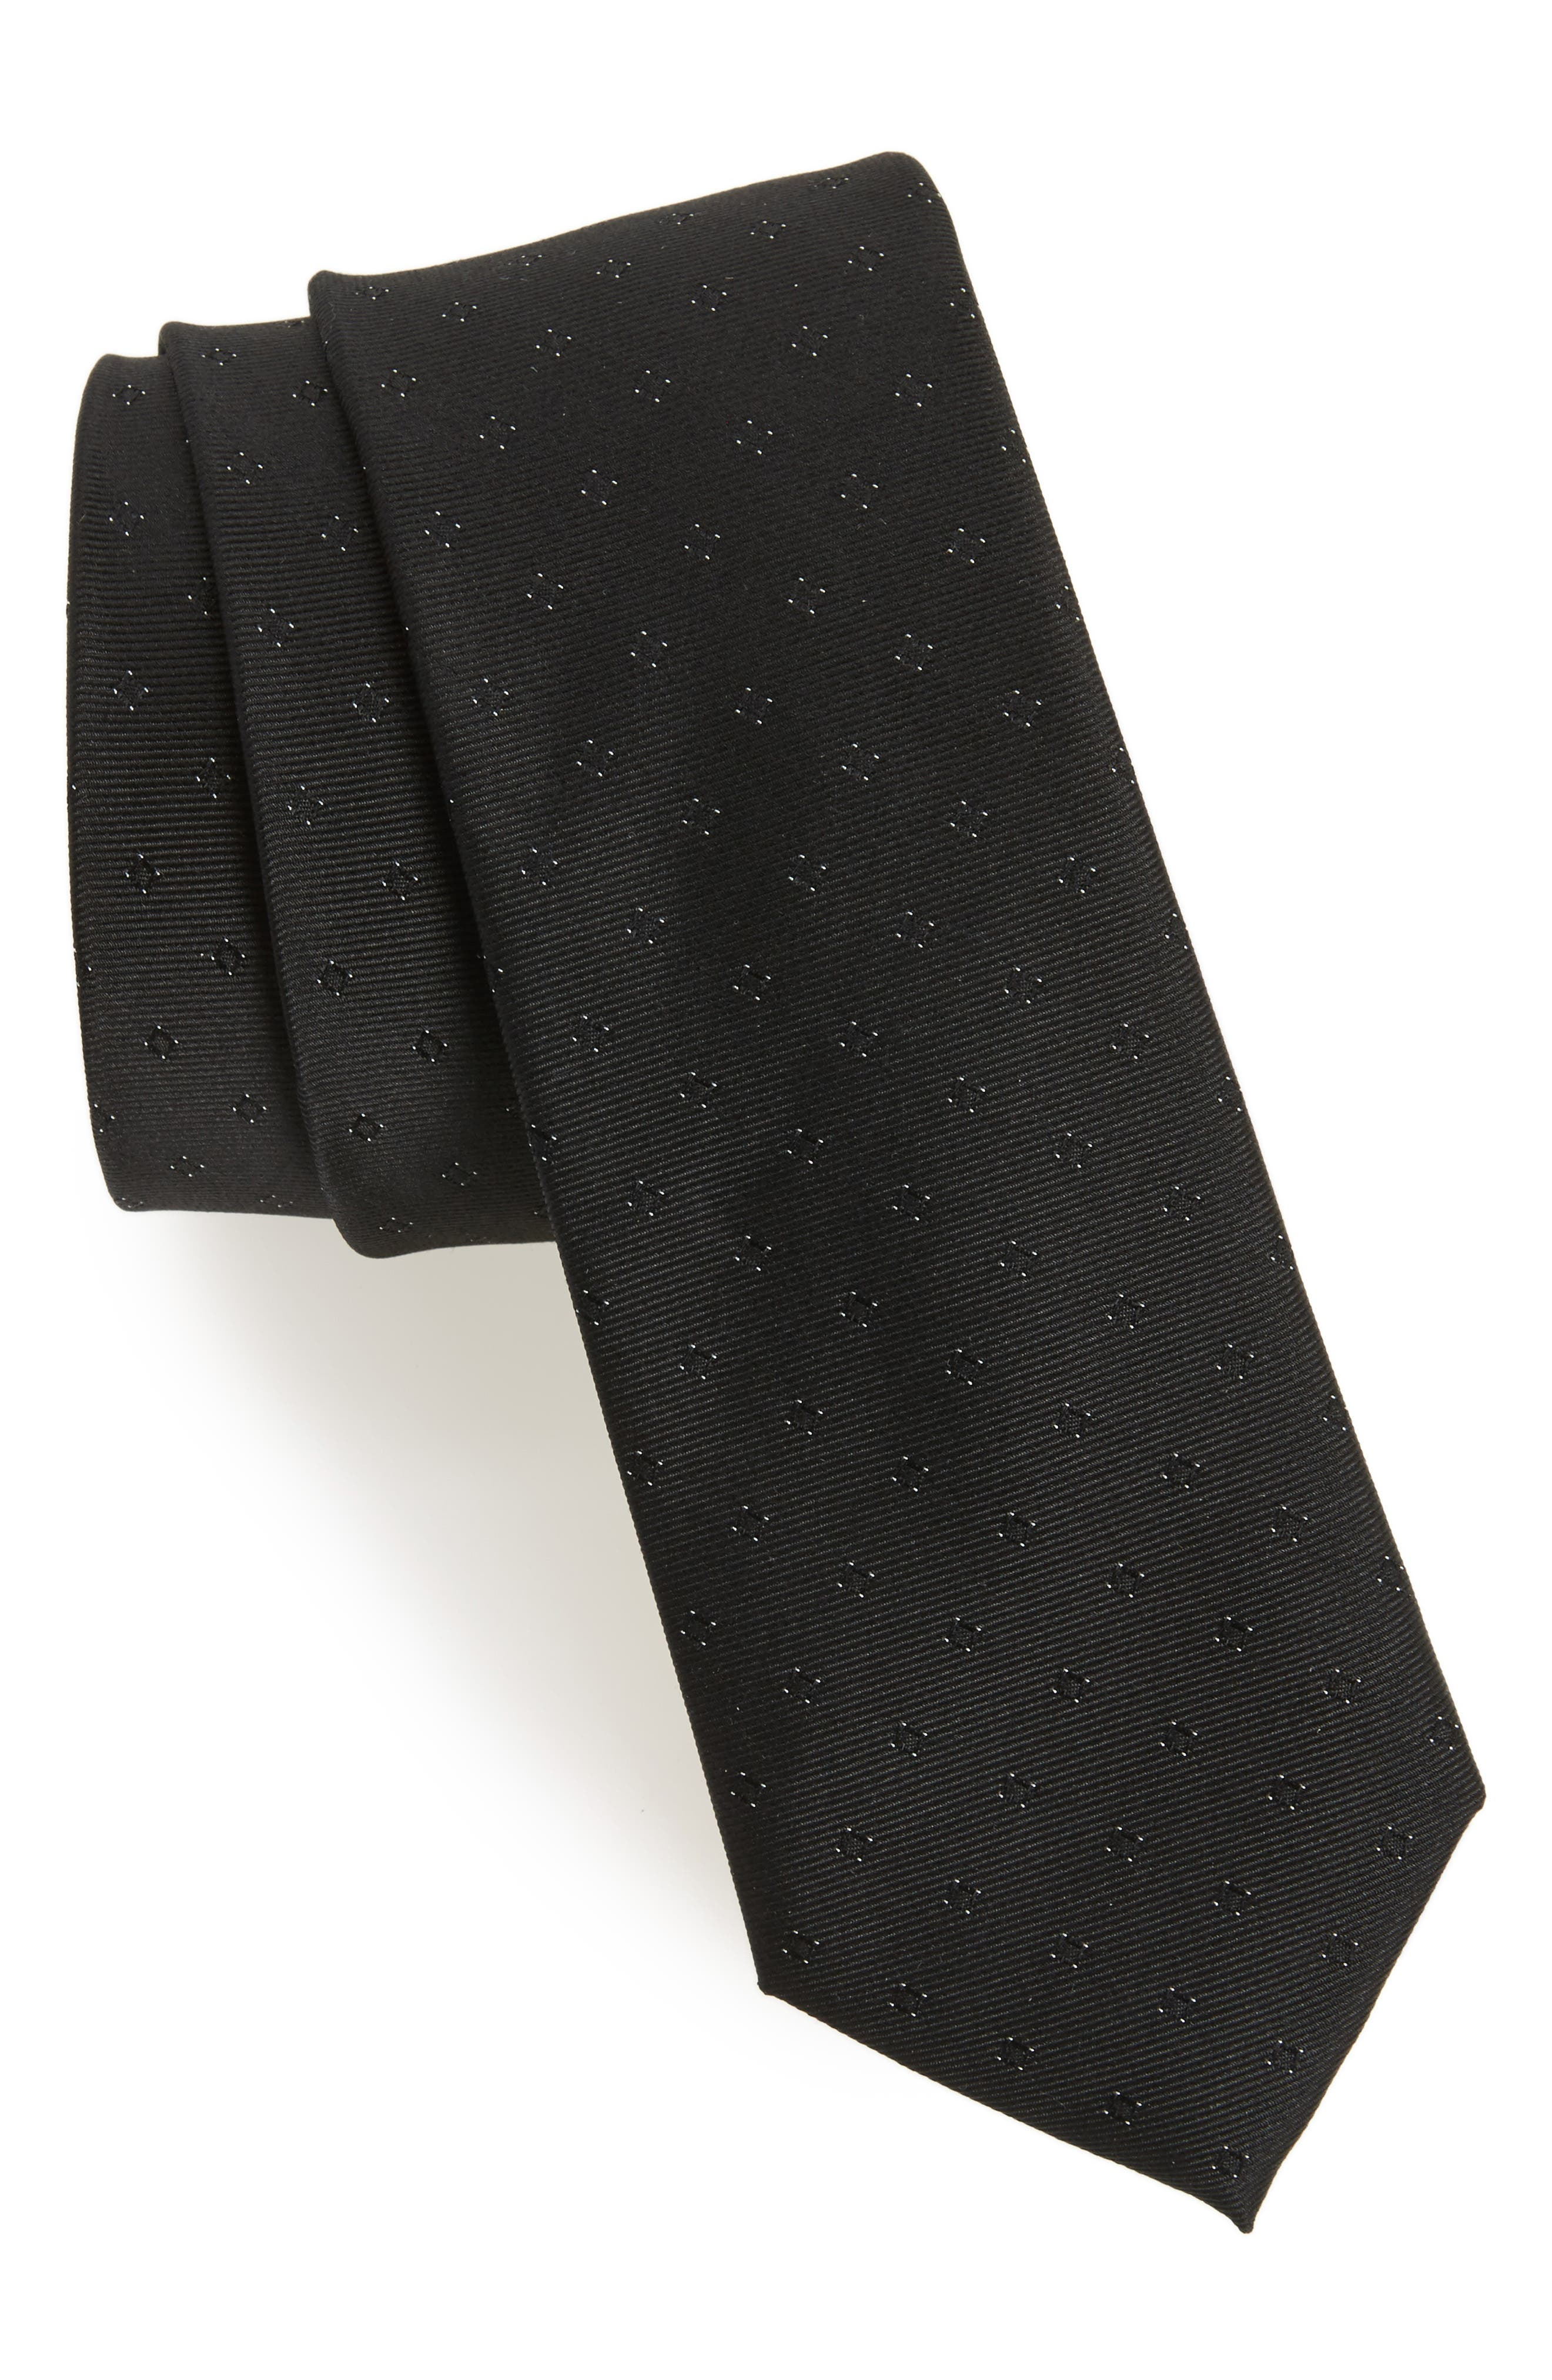 Wardrobe Silk Tie,                             Main thumbnail 1, color,                             Black